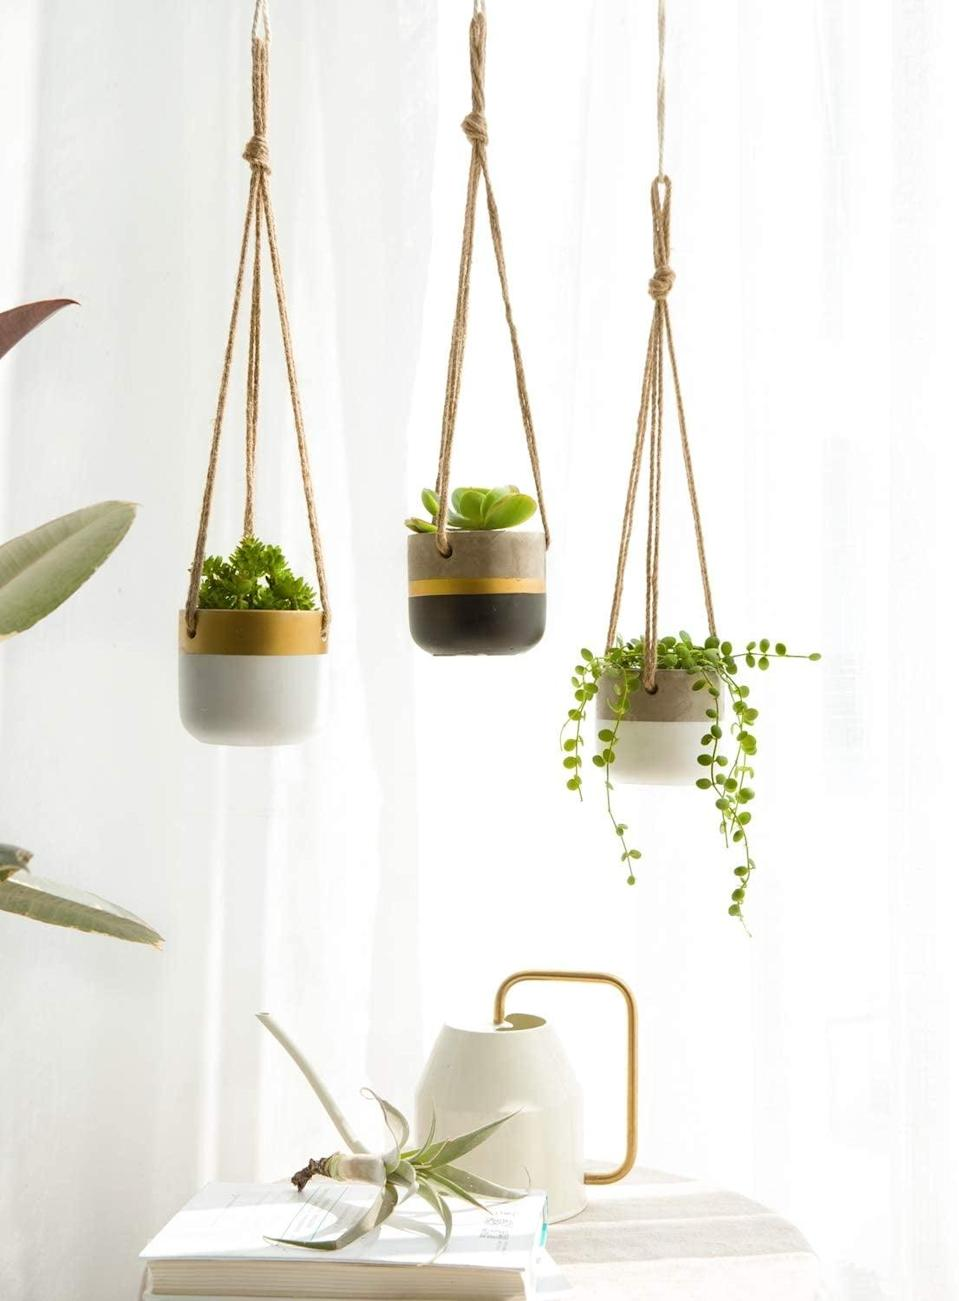 <p>From succulents to small plants, these <span>Dahey 3 Pack Small Cement Hanging Planters</span> ($20) are a great way to add accents to your decor.</p>